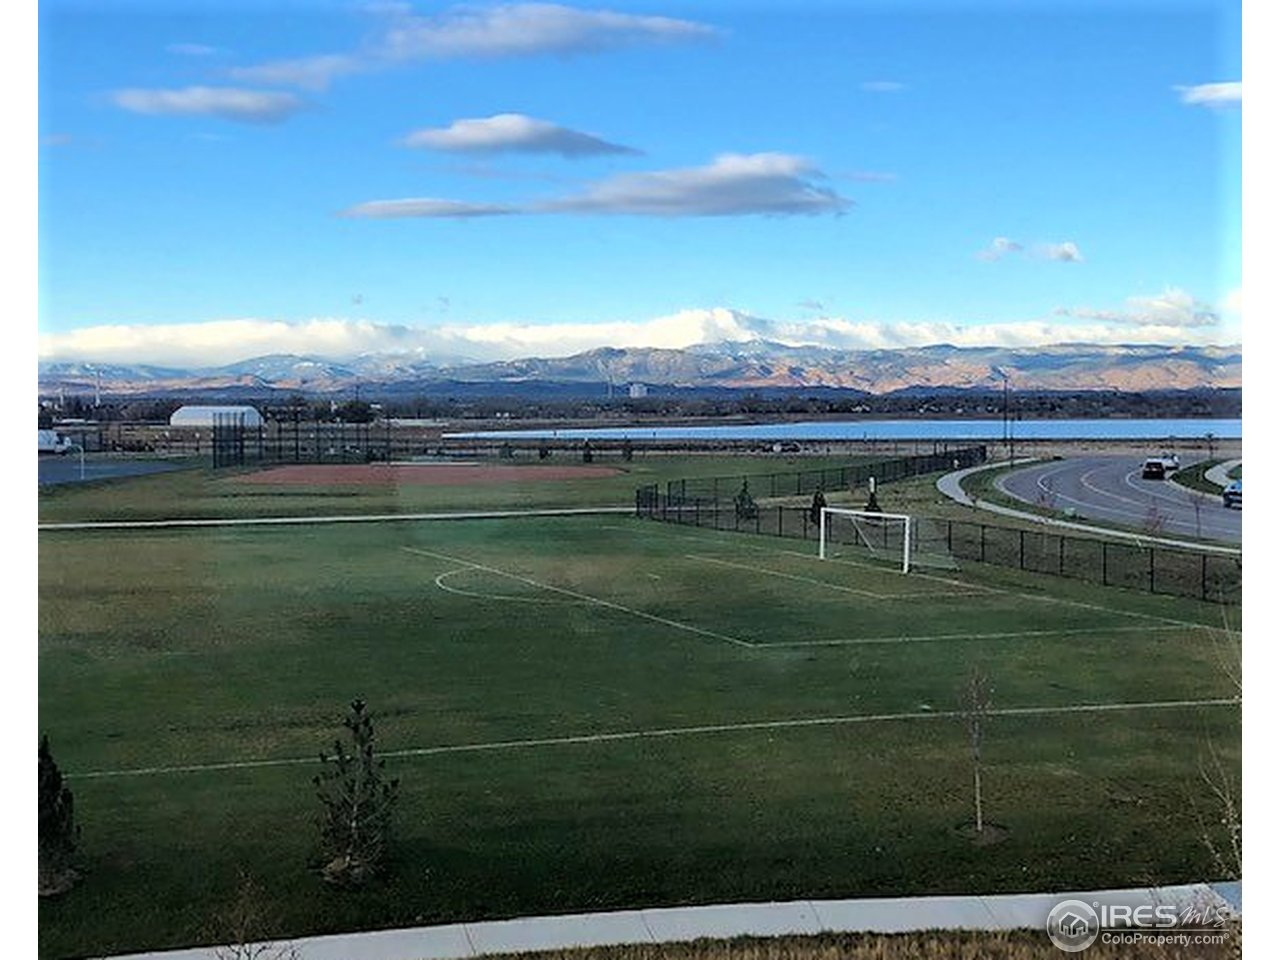 House is situated facing Longs Peak and lake views